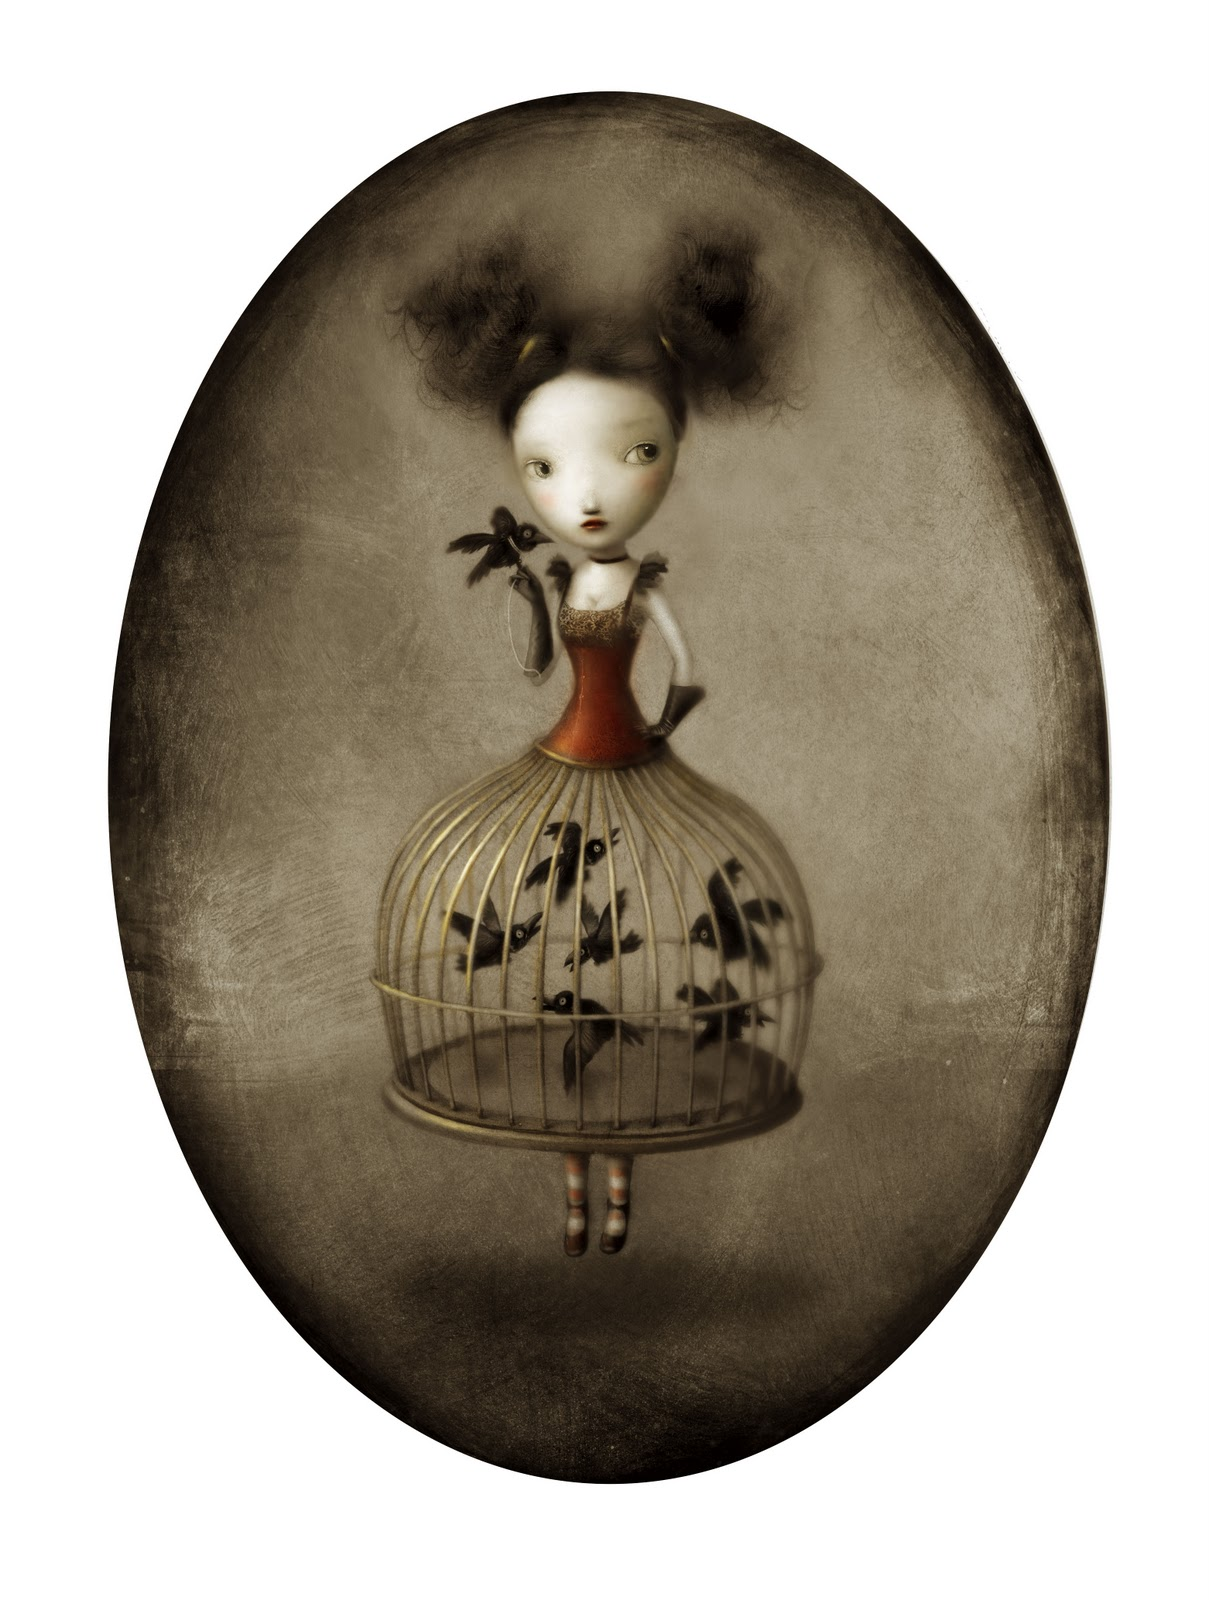 art et cancrelats nicoletta ceccoli